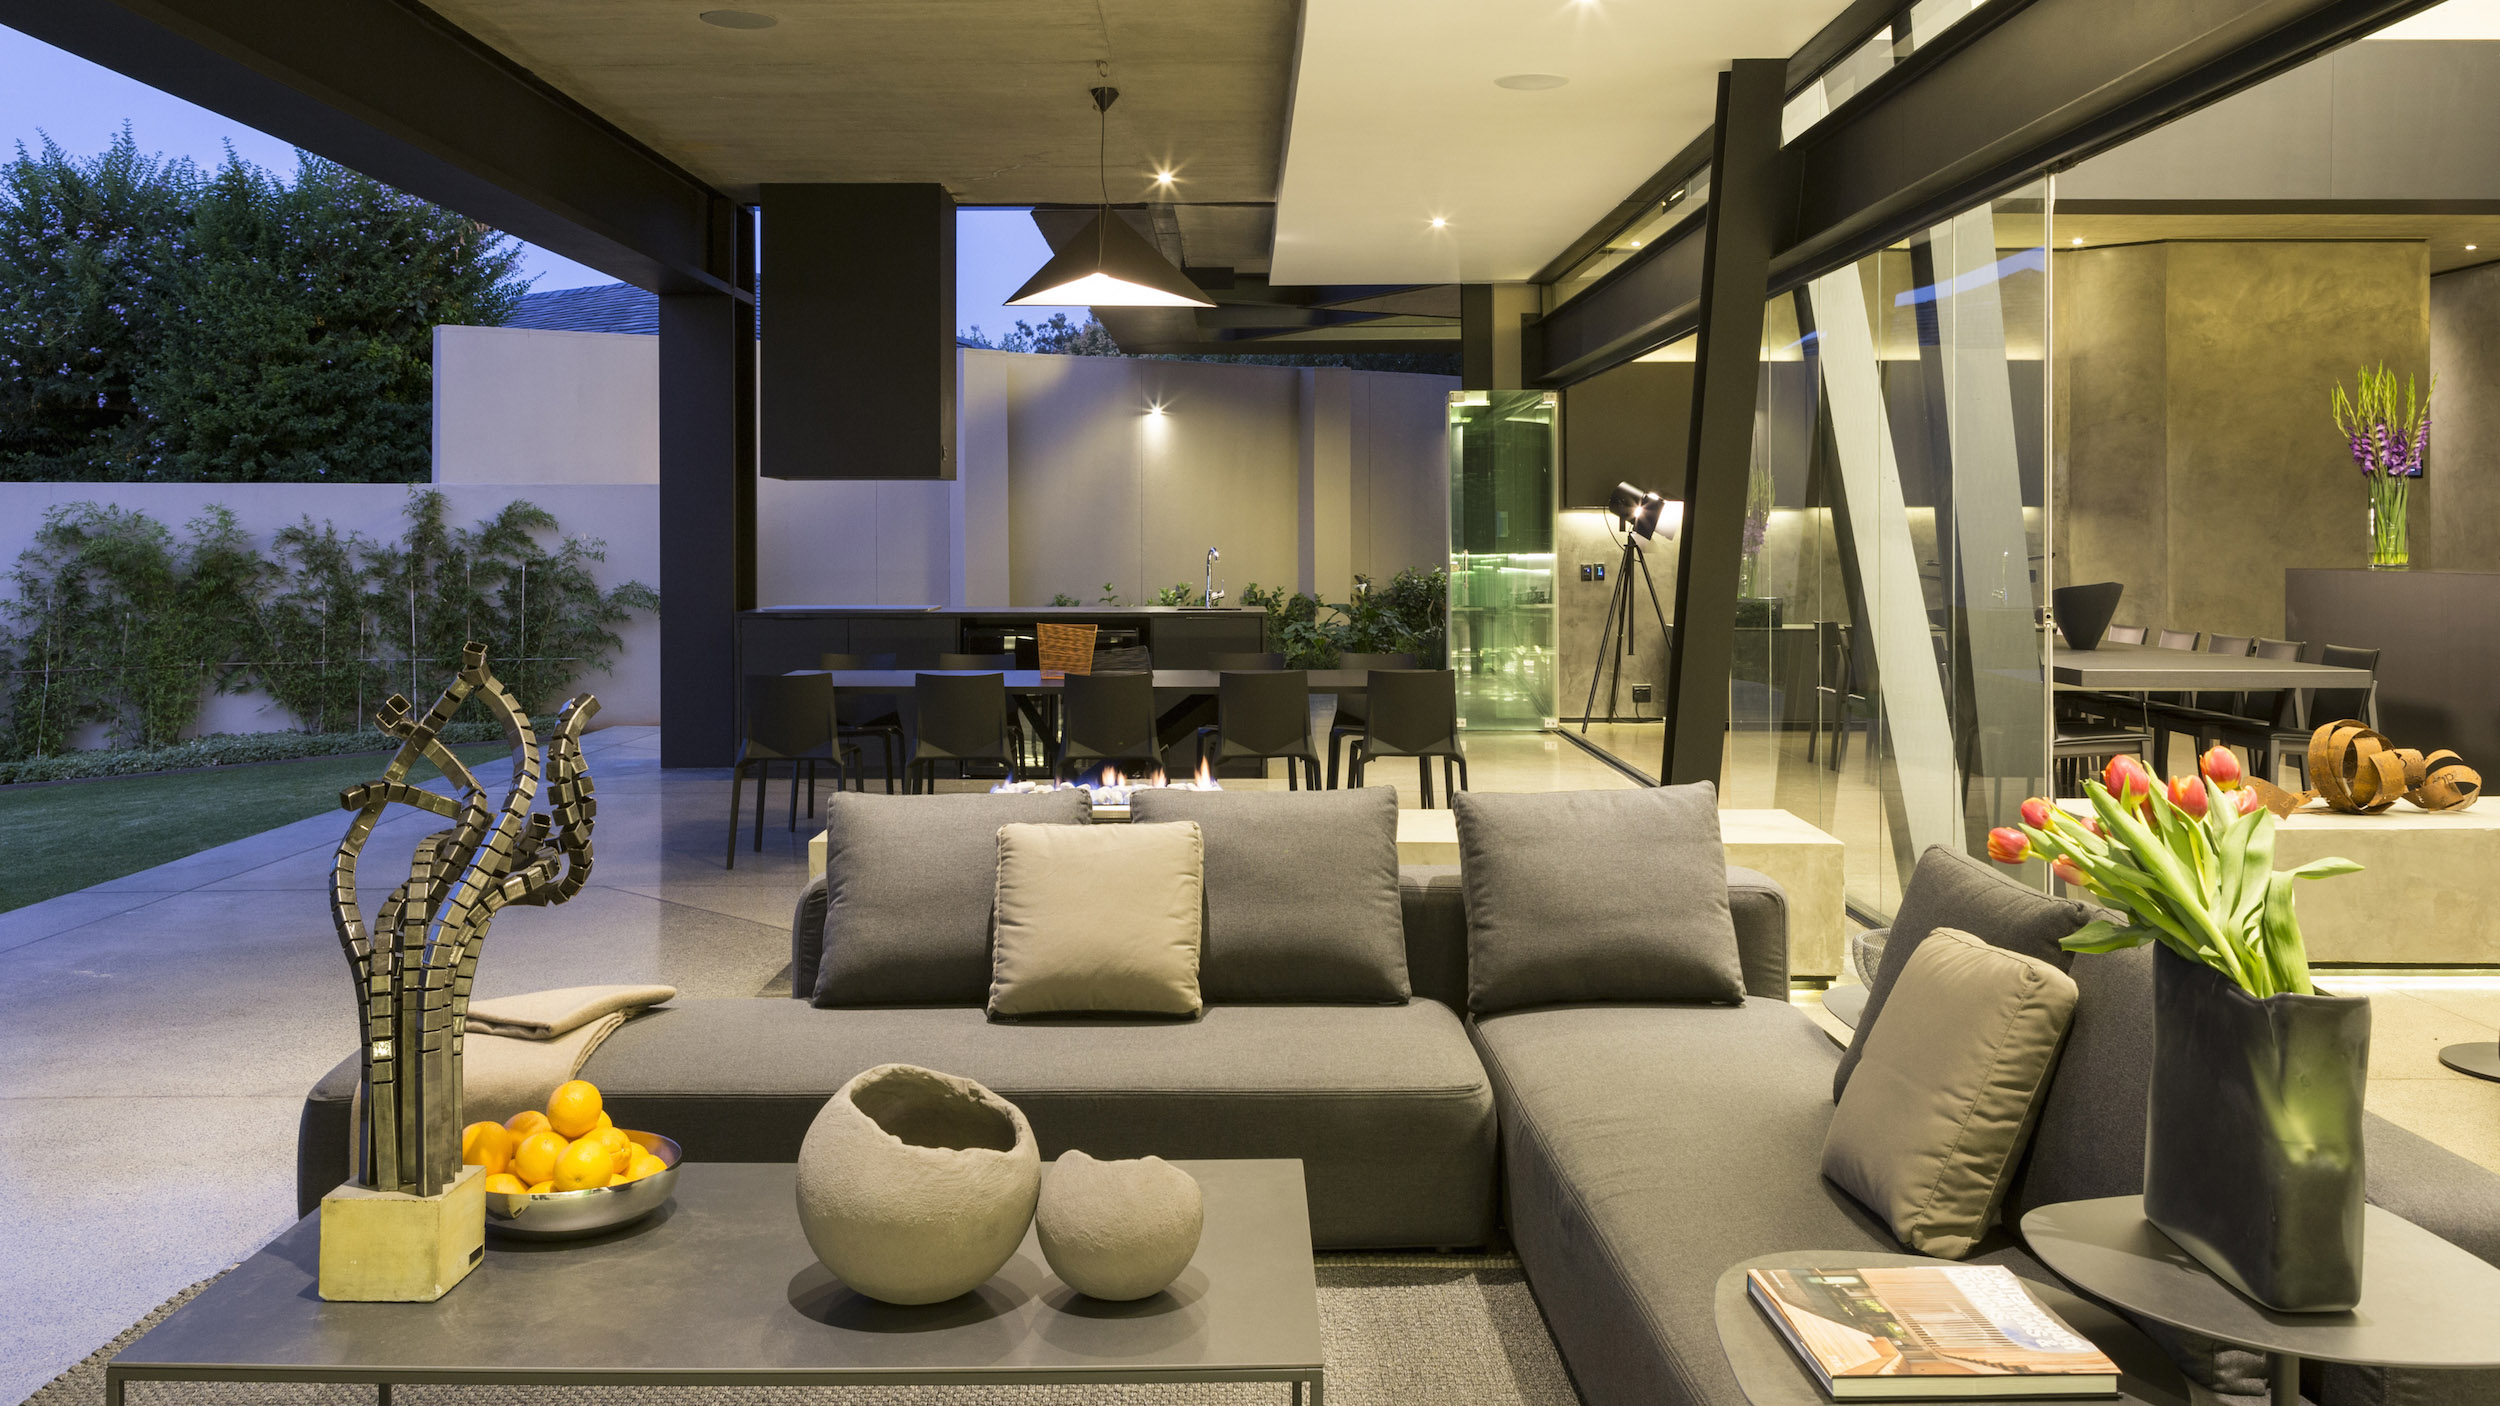 Kloof Road Masterpiece House in Johannesburg by Nico van der Meulen Architects-25